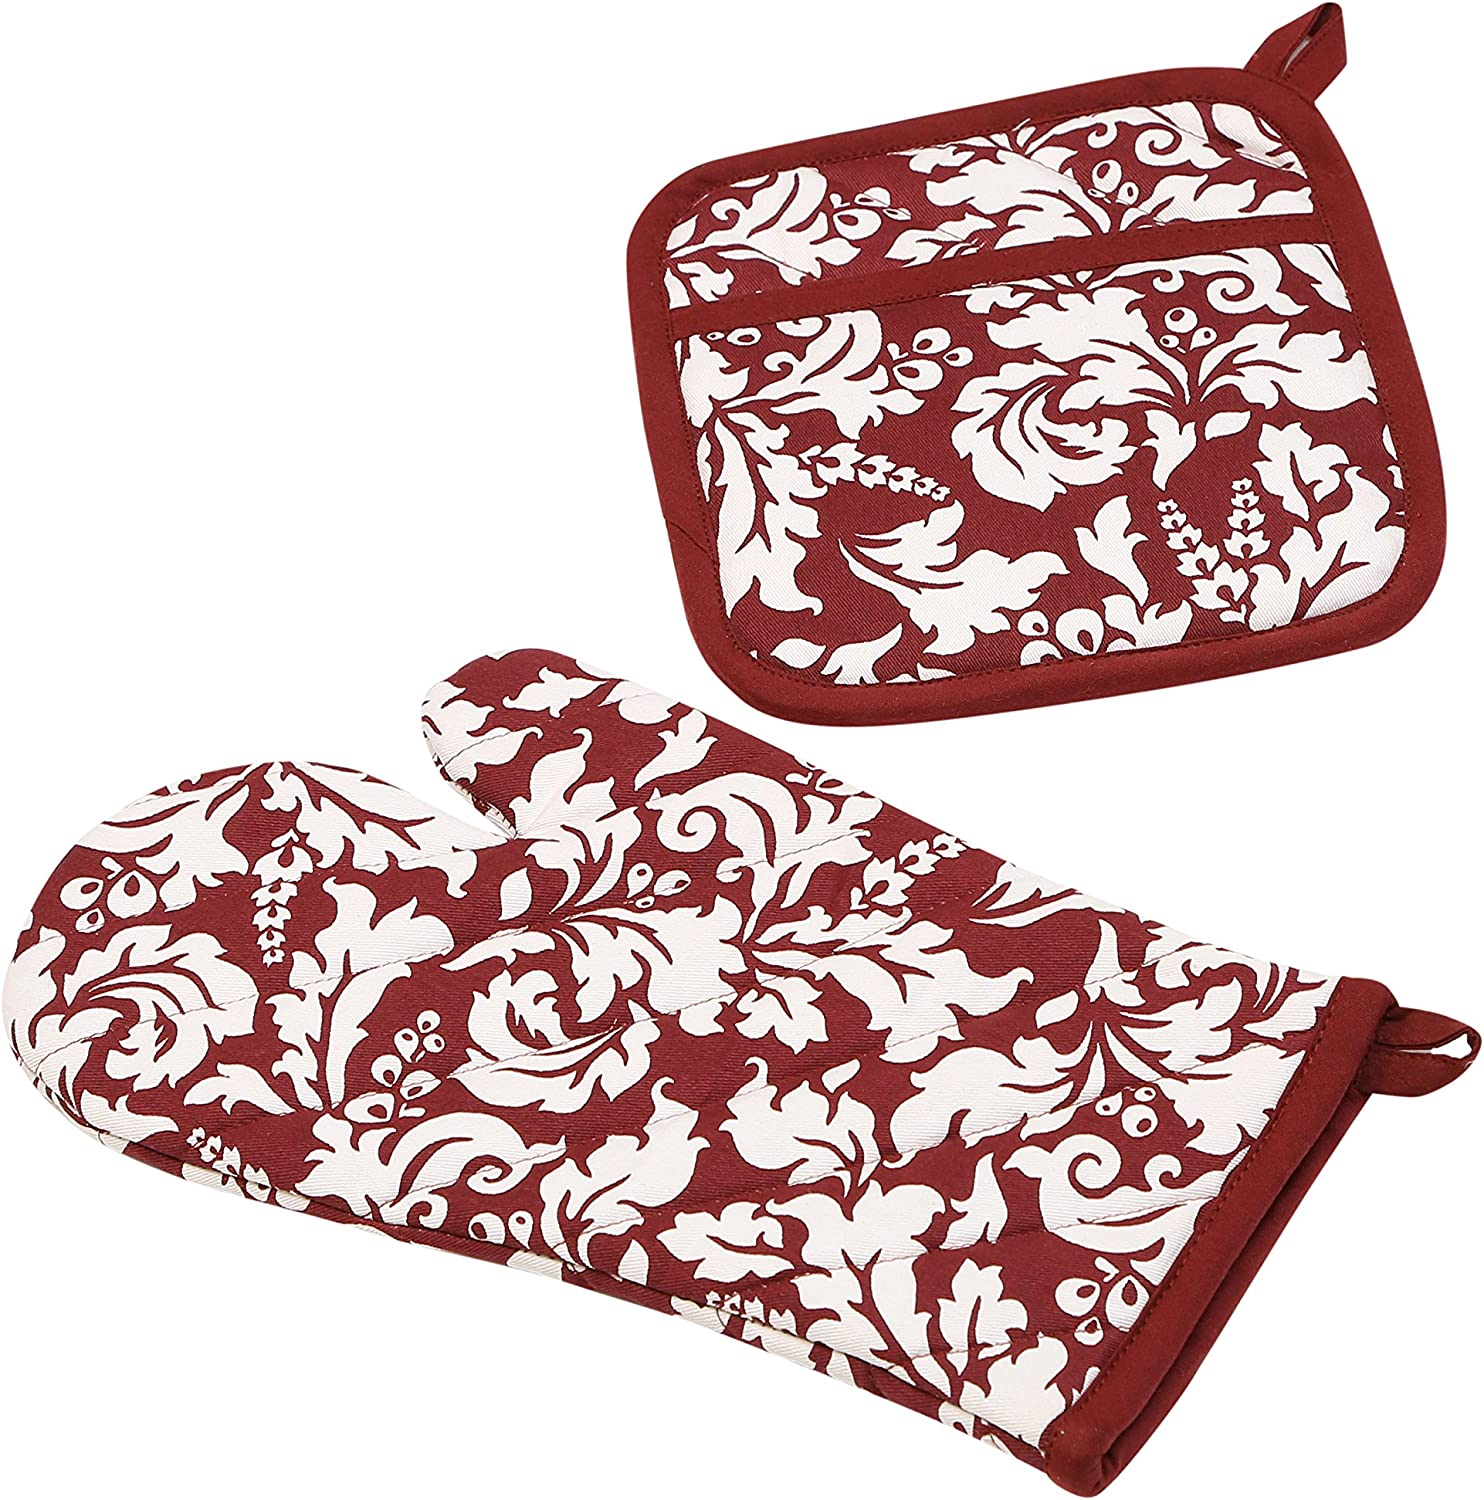 Max 57% OFF Yourtablecloth Set of Oven unisex Mitt Gloves-10 Holder Pot and or